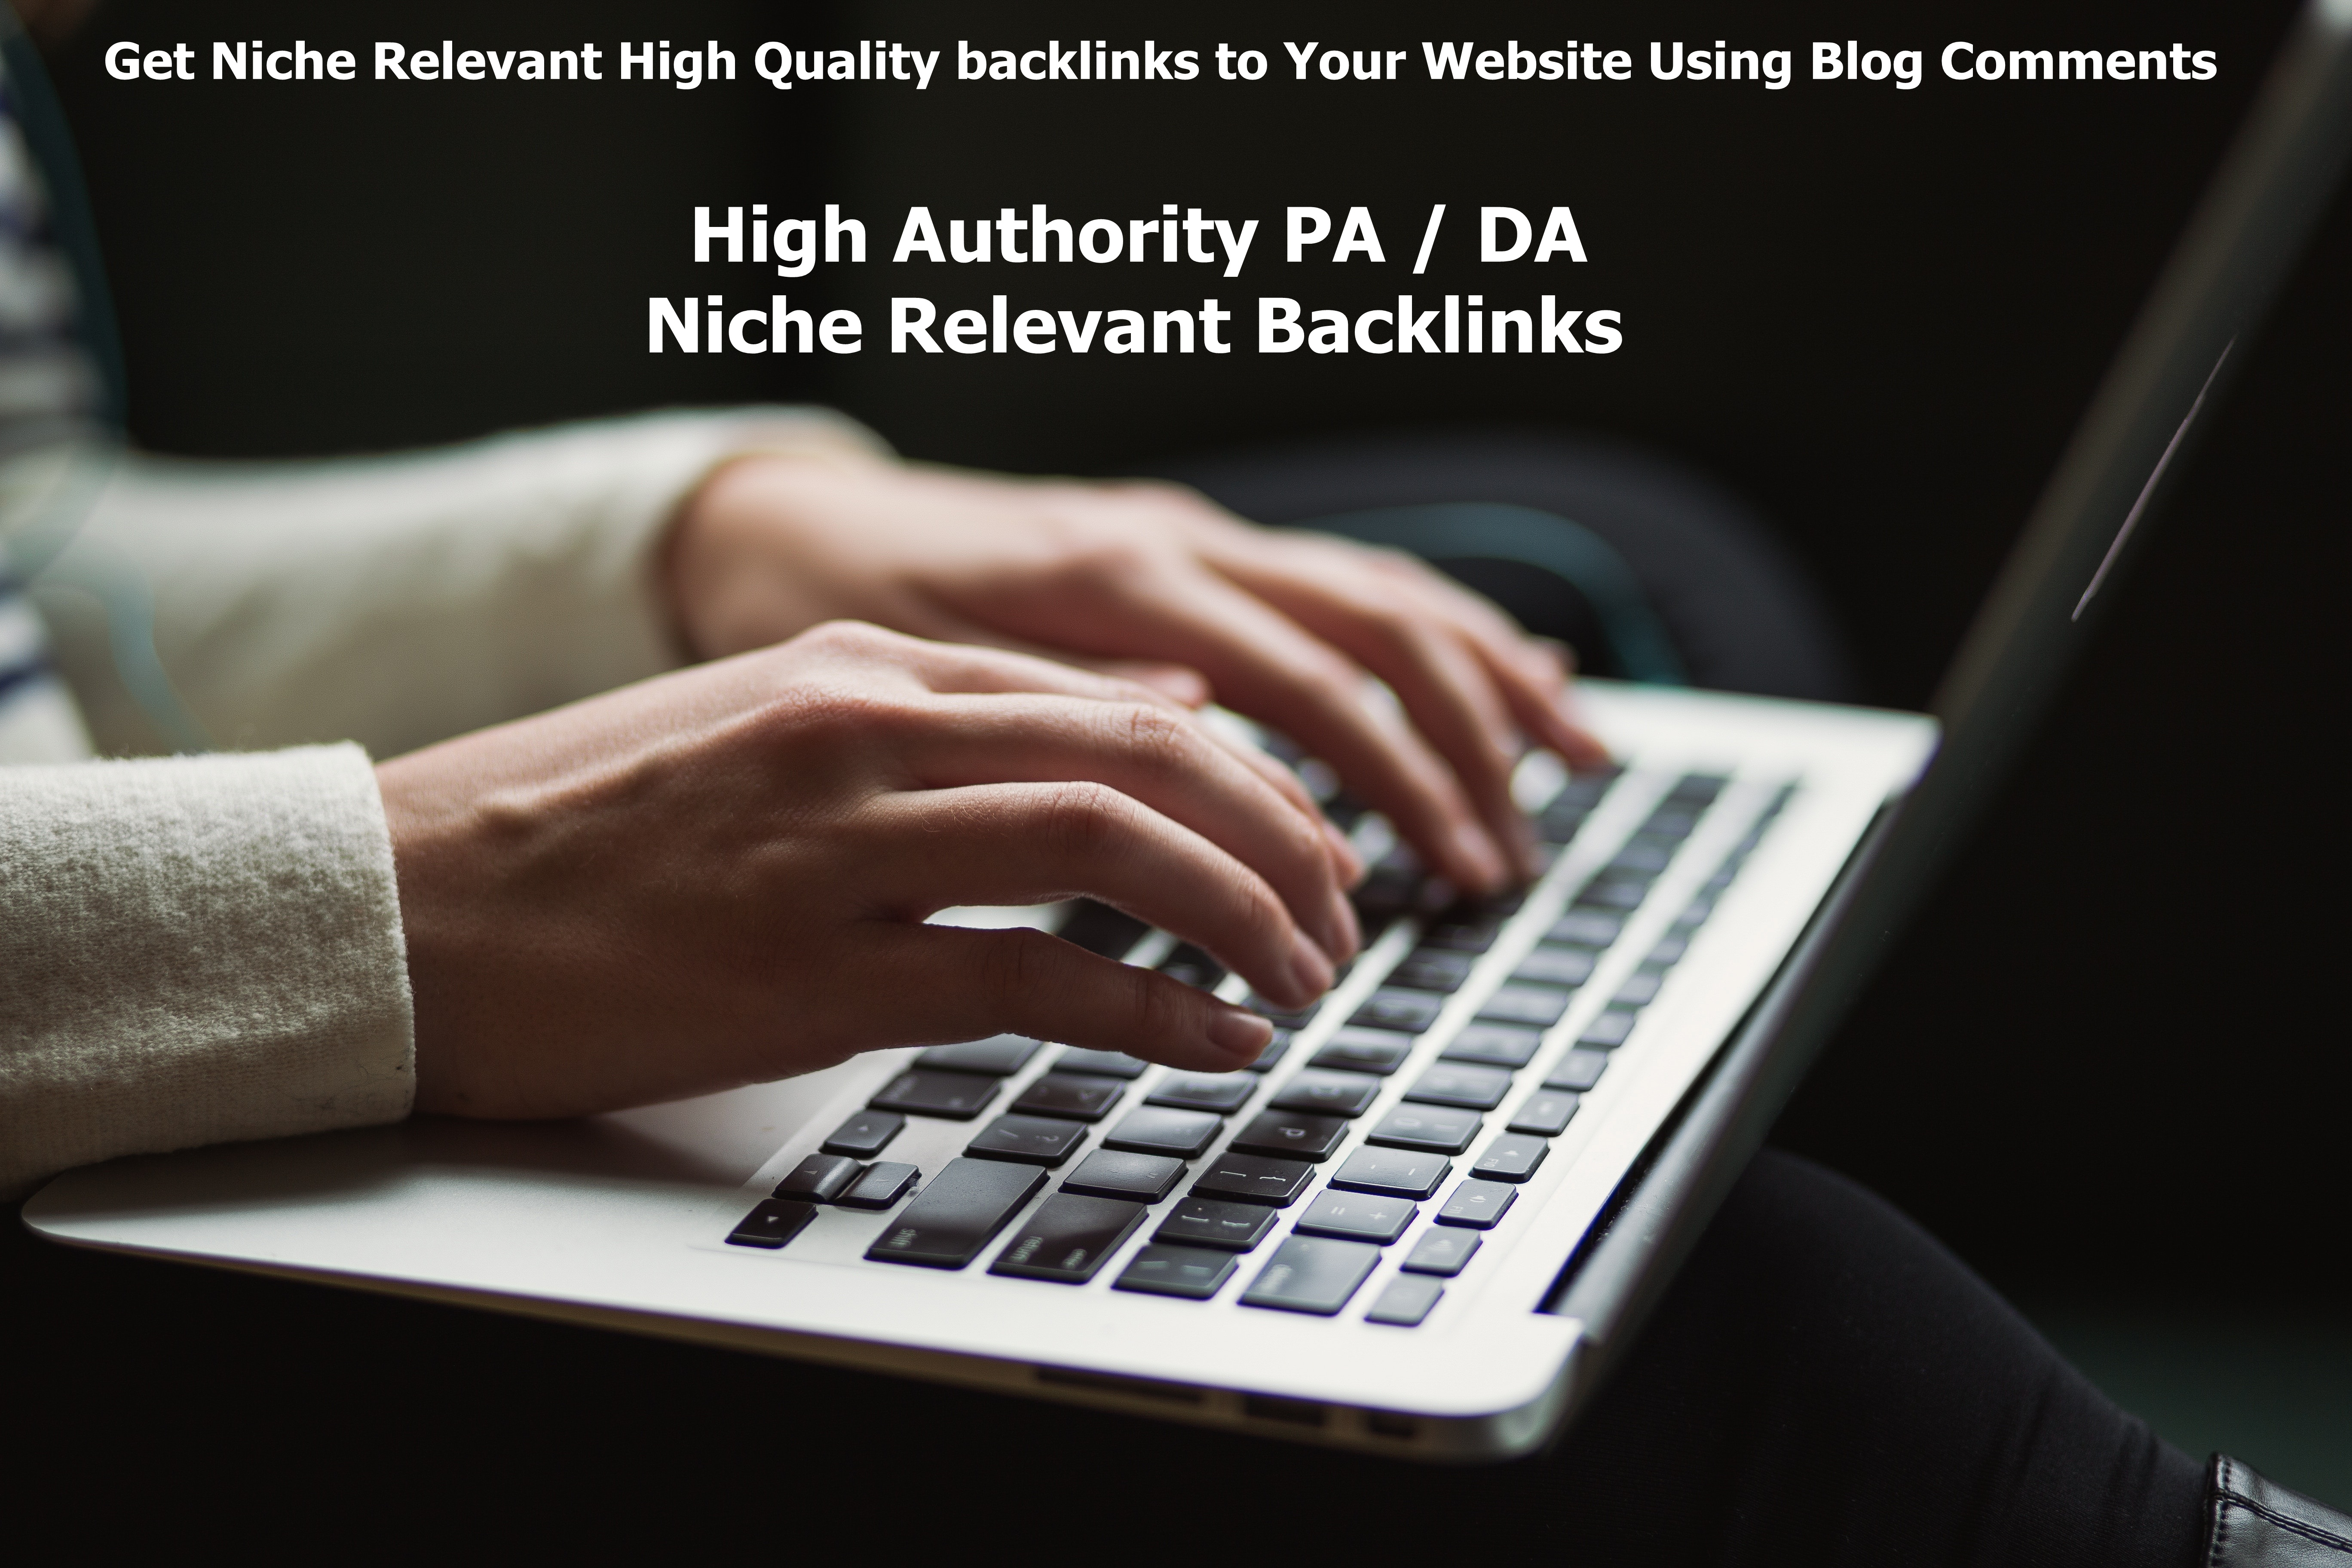 Get Specific 25 Niche Relevant High Quality Backlinks Using Blog Comments